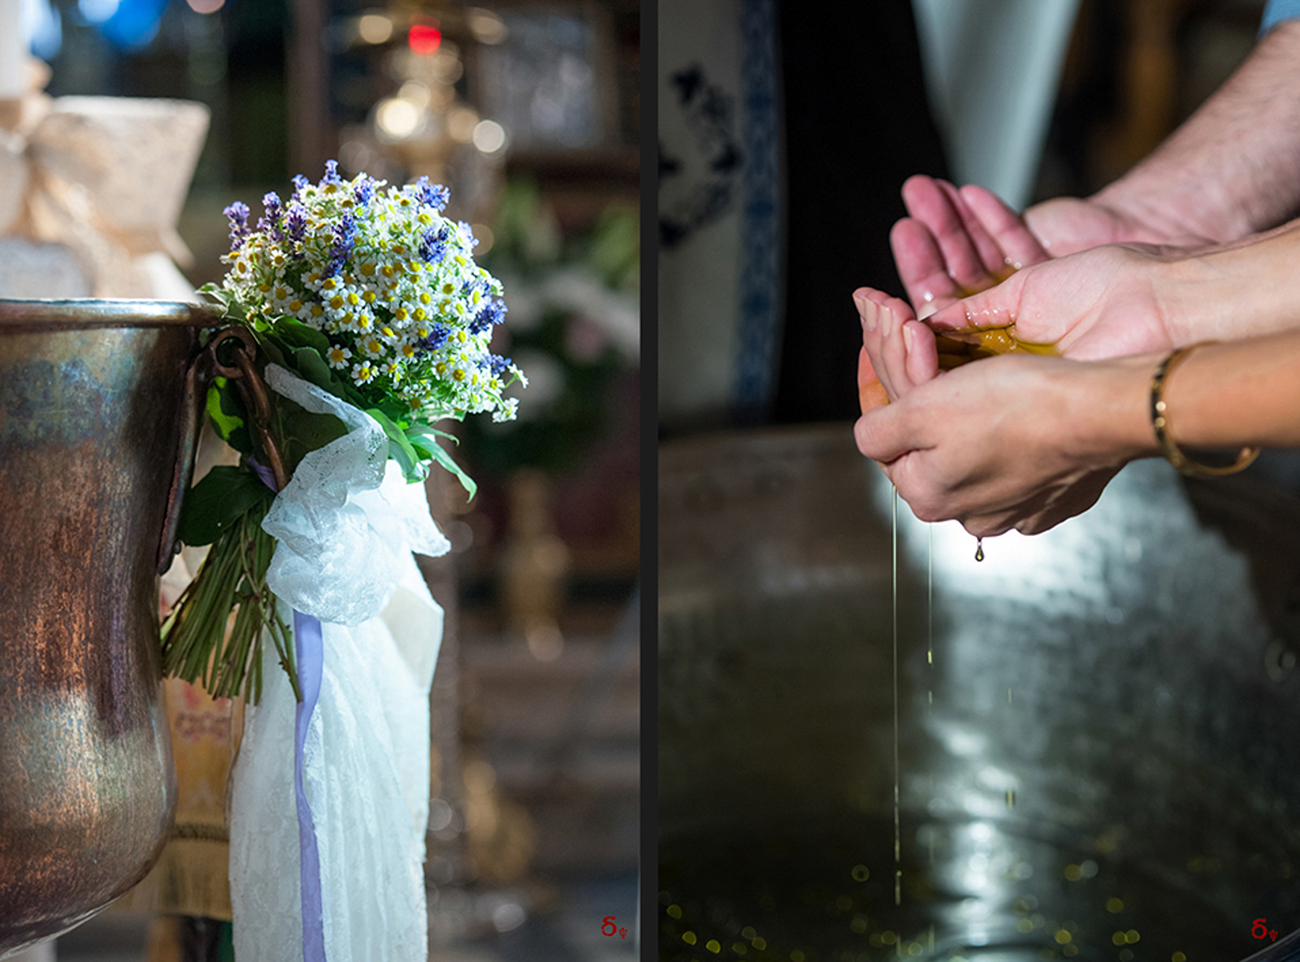 details of a baptism day hands with baptism oil flowers levander christening photographer